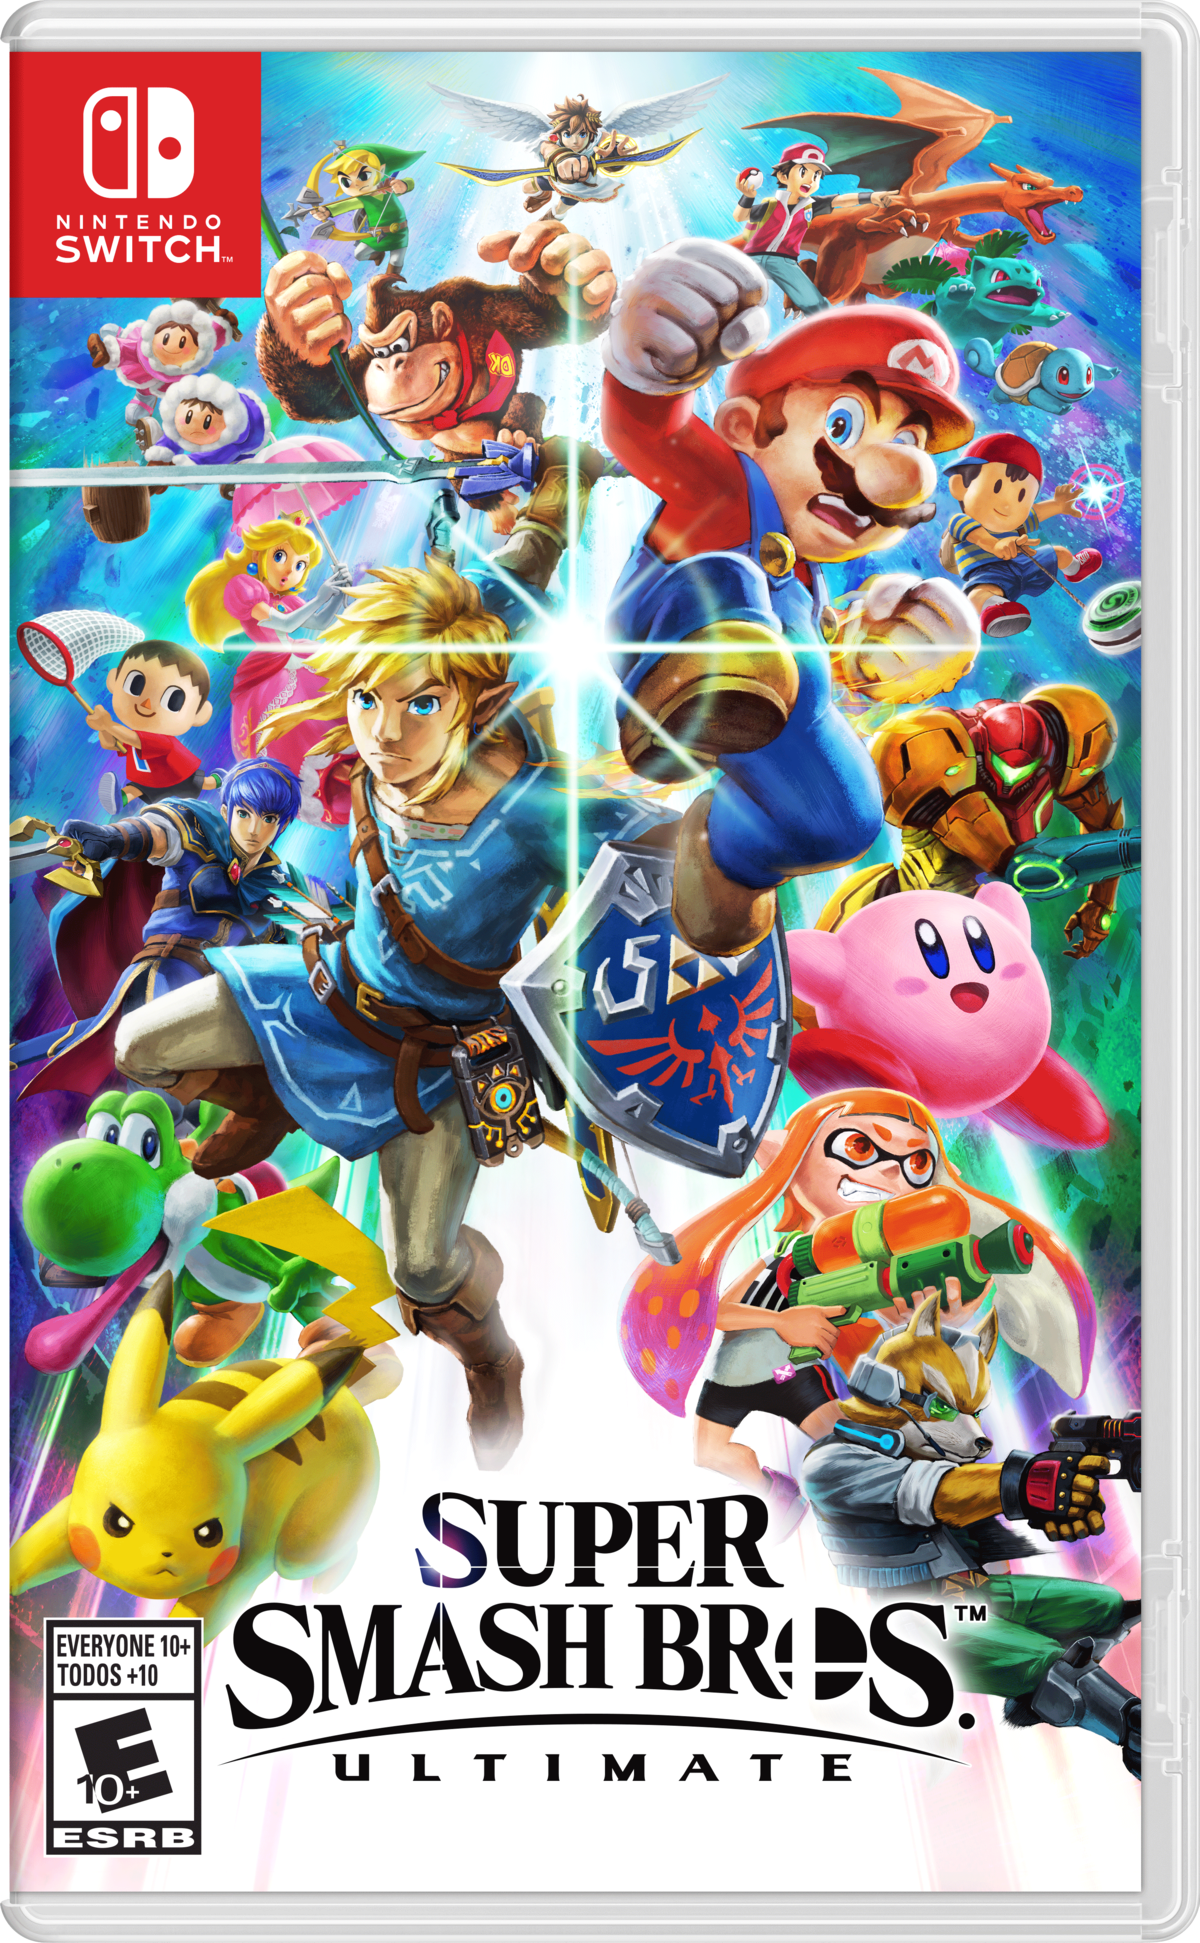 Super Smash Bros Ultimate Smashwiki The Super Smash Bros Wiki